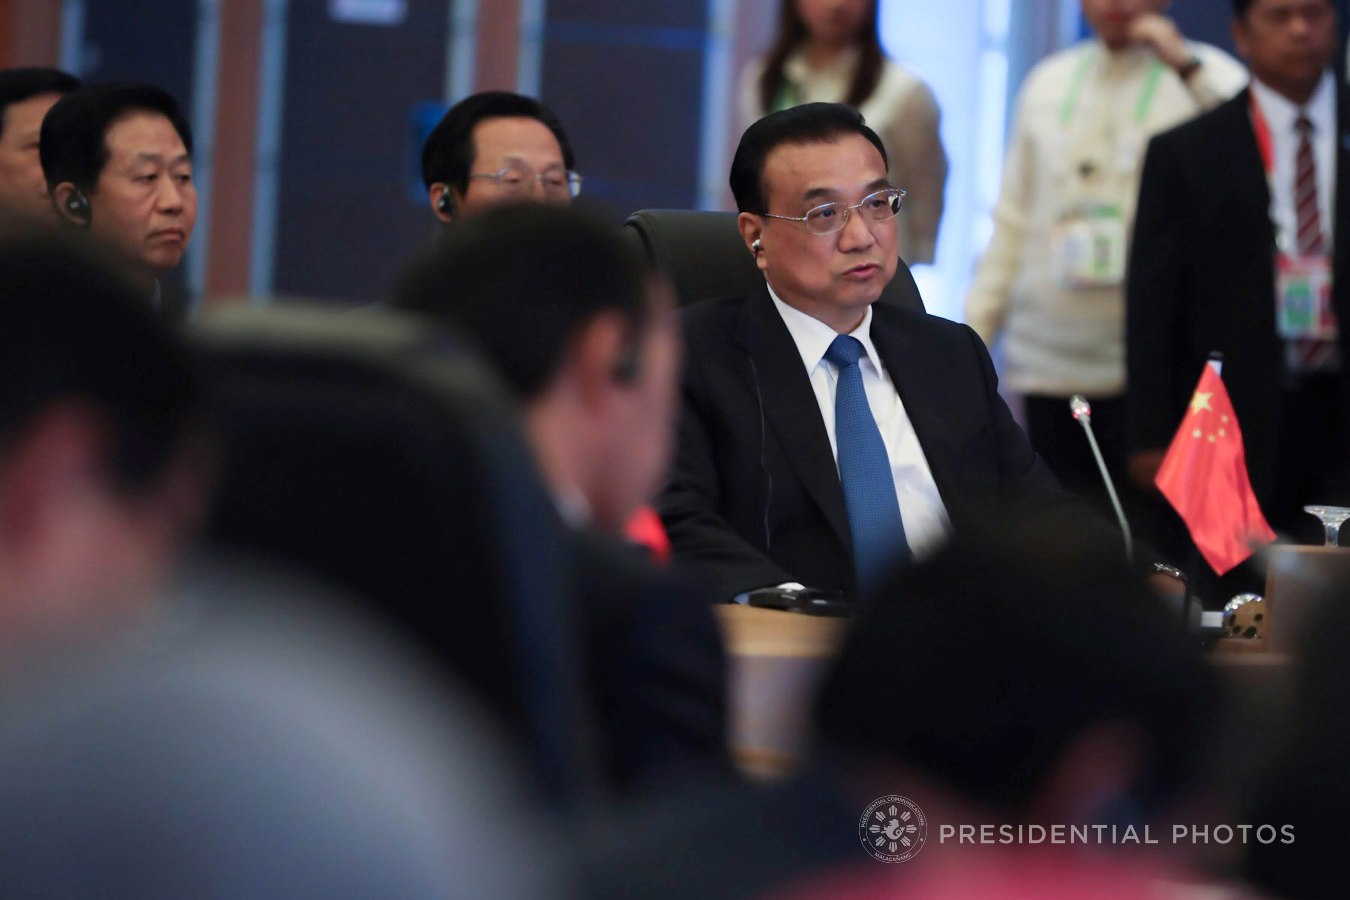 People's Republic of China Premier Li Keqiang, in his opening remarks during the 20th Association of Southeast Asian Nations (ASEAN)-China Summit at the Philippine International Convention Center in Pasay City on November 13, 2017, declares that the ASEAN has long been one of their country's top priorities when it comes to fostering partnership and diplomacy. ALBERT ALCAIN/PRESIDENTIAL PHOTO